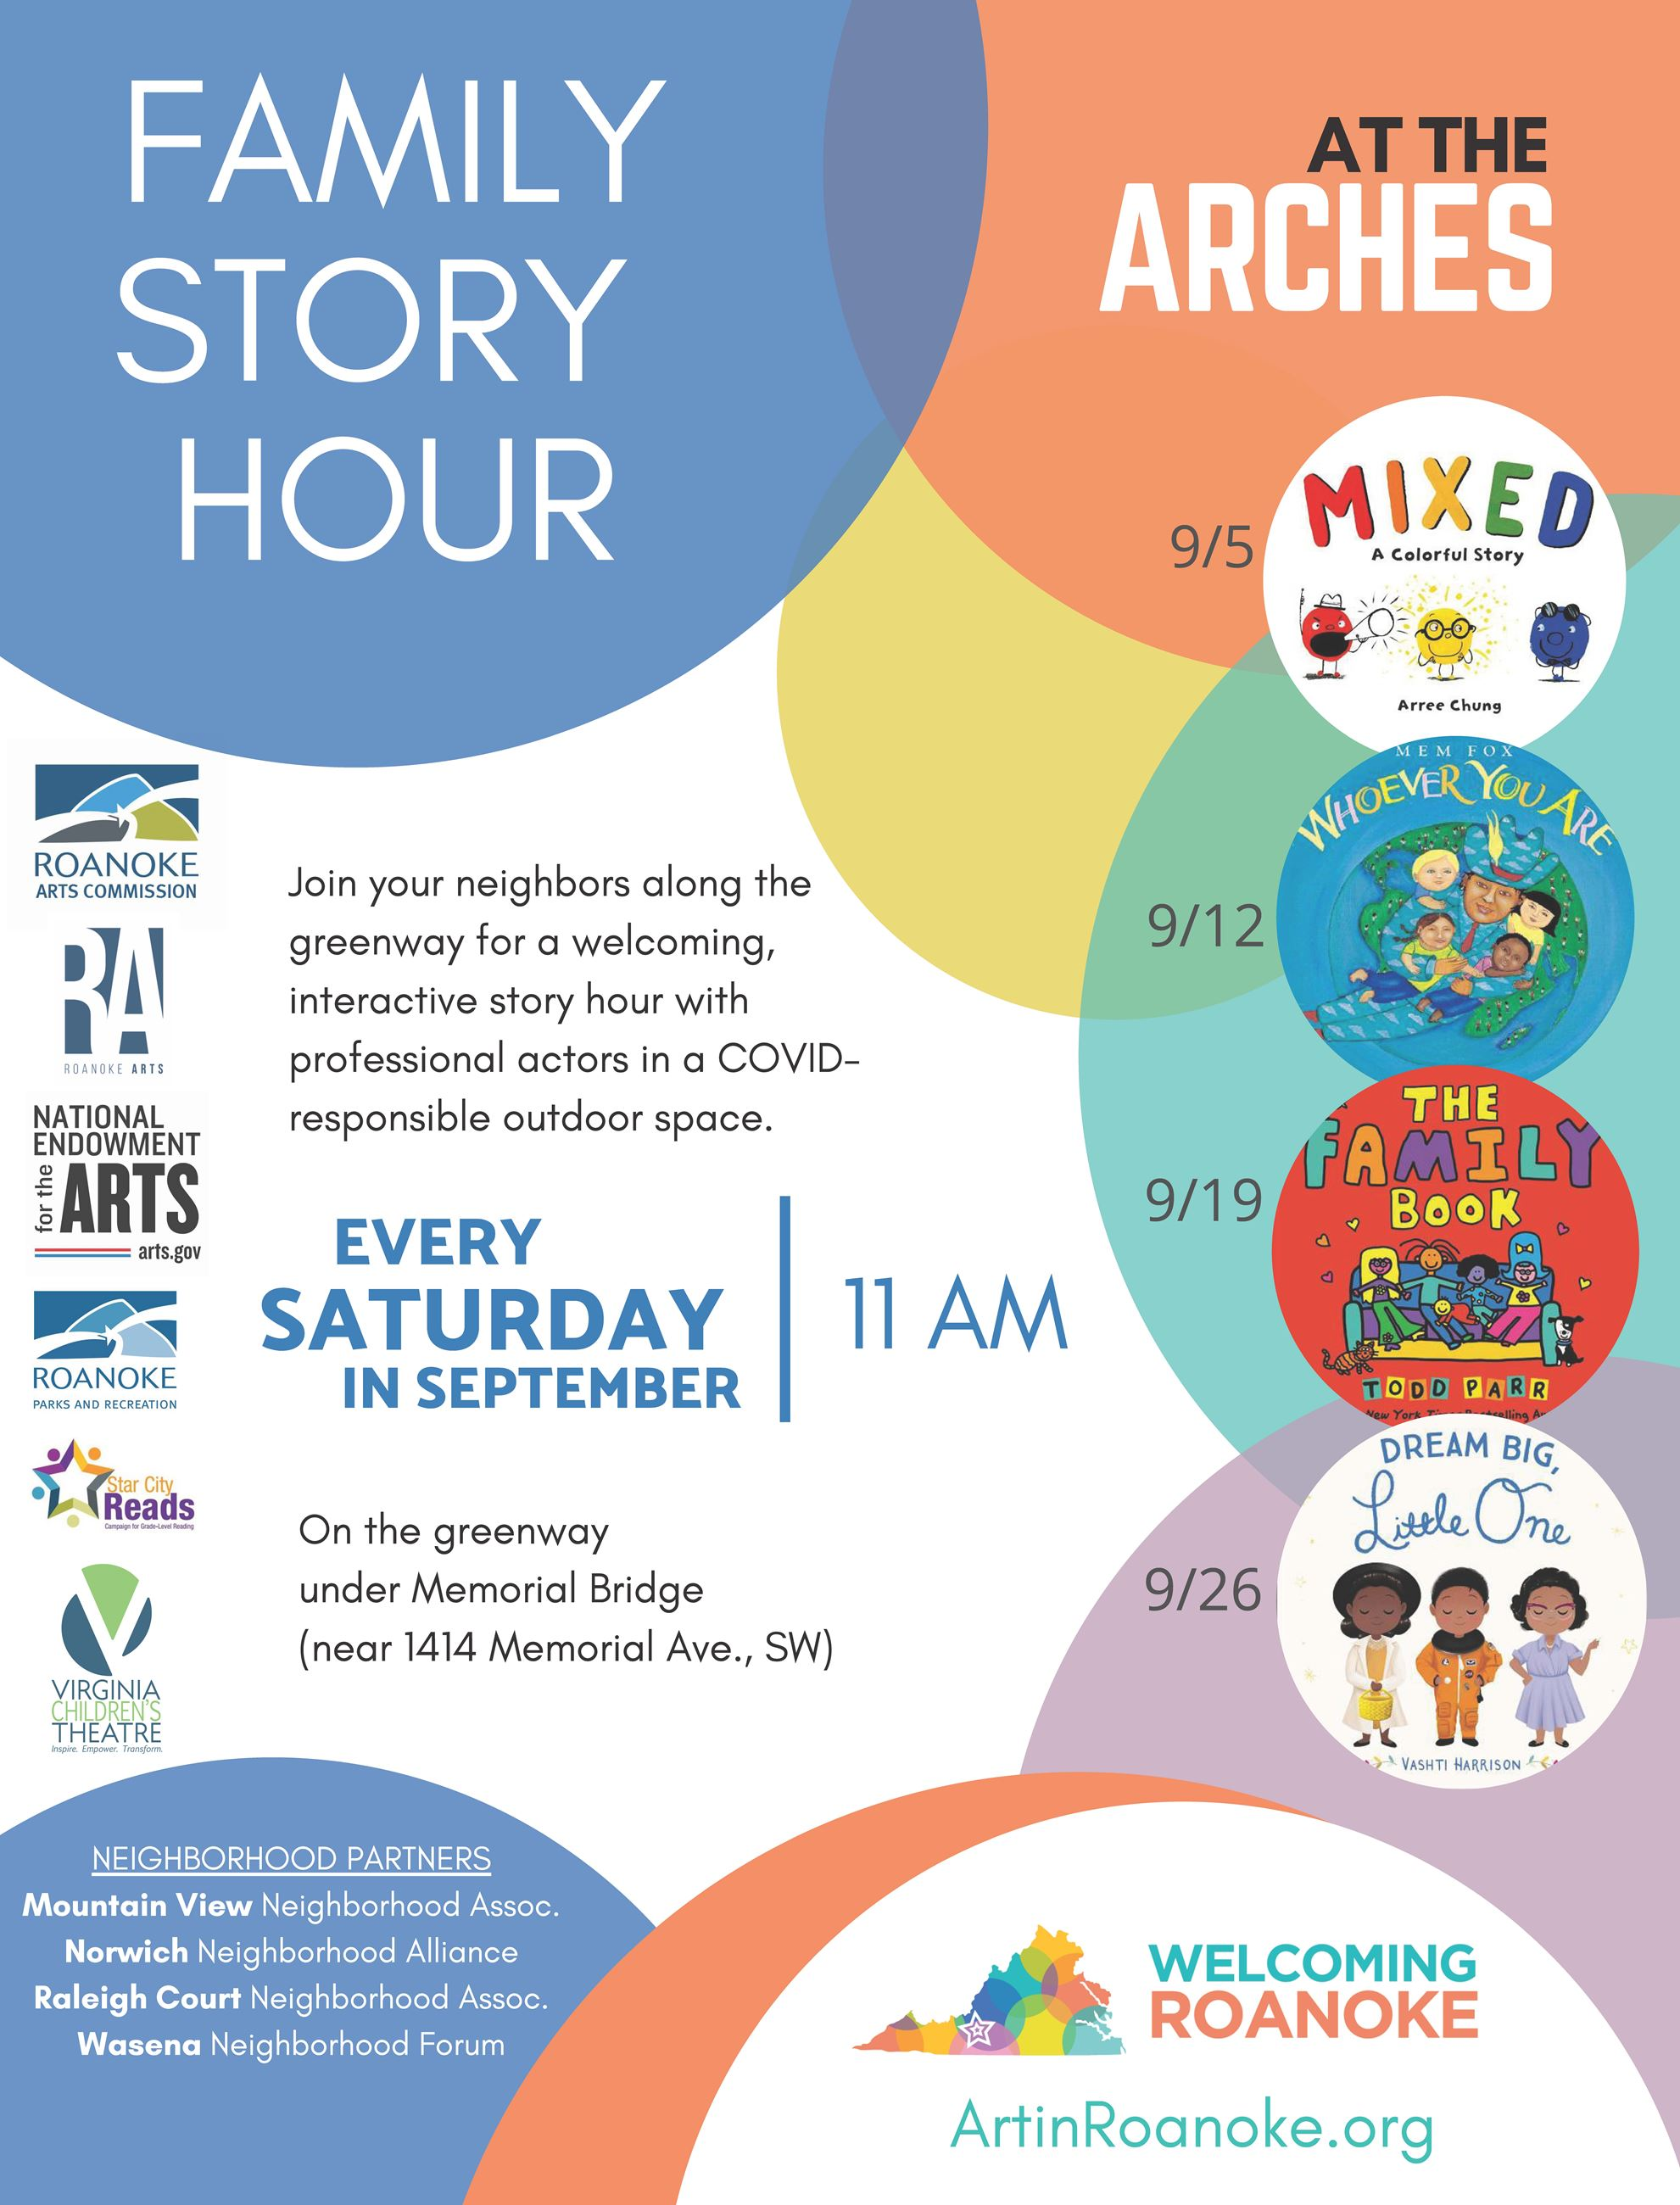 Join us at the ARCHES for Story Hour to help showcase Welcoming Roanoke!